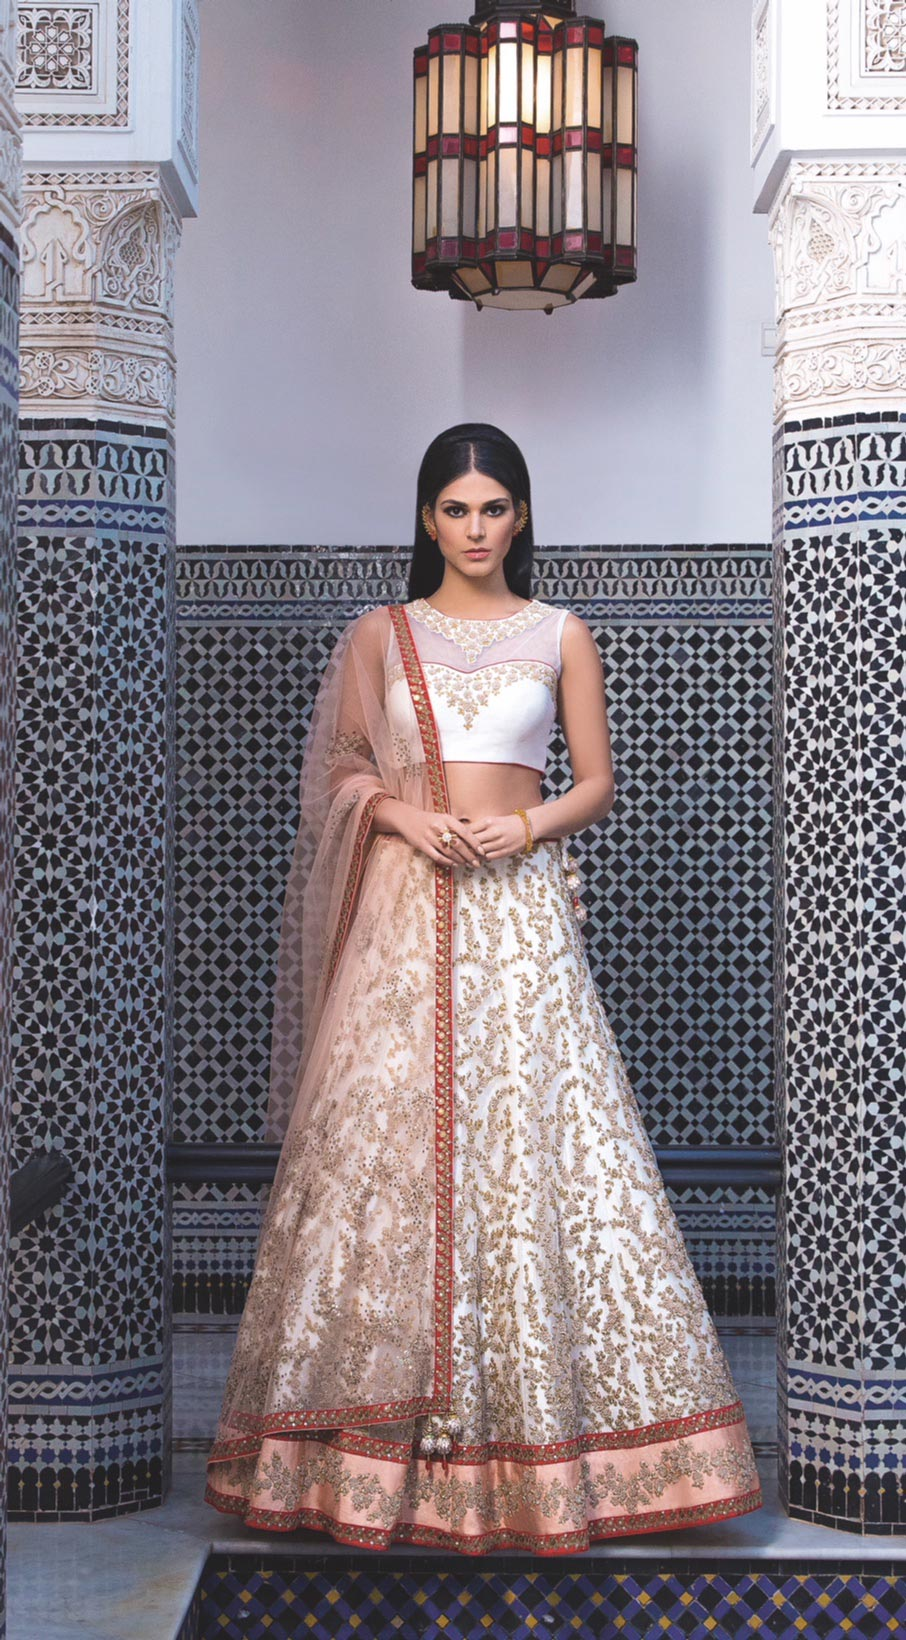 dd7f1ccfce41 A Quick Guide to Buying an Indian Wedding Dress